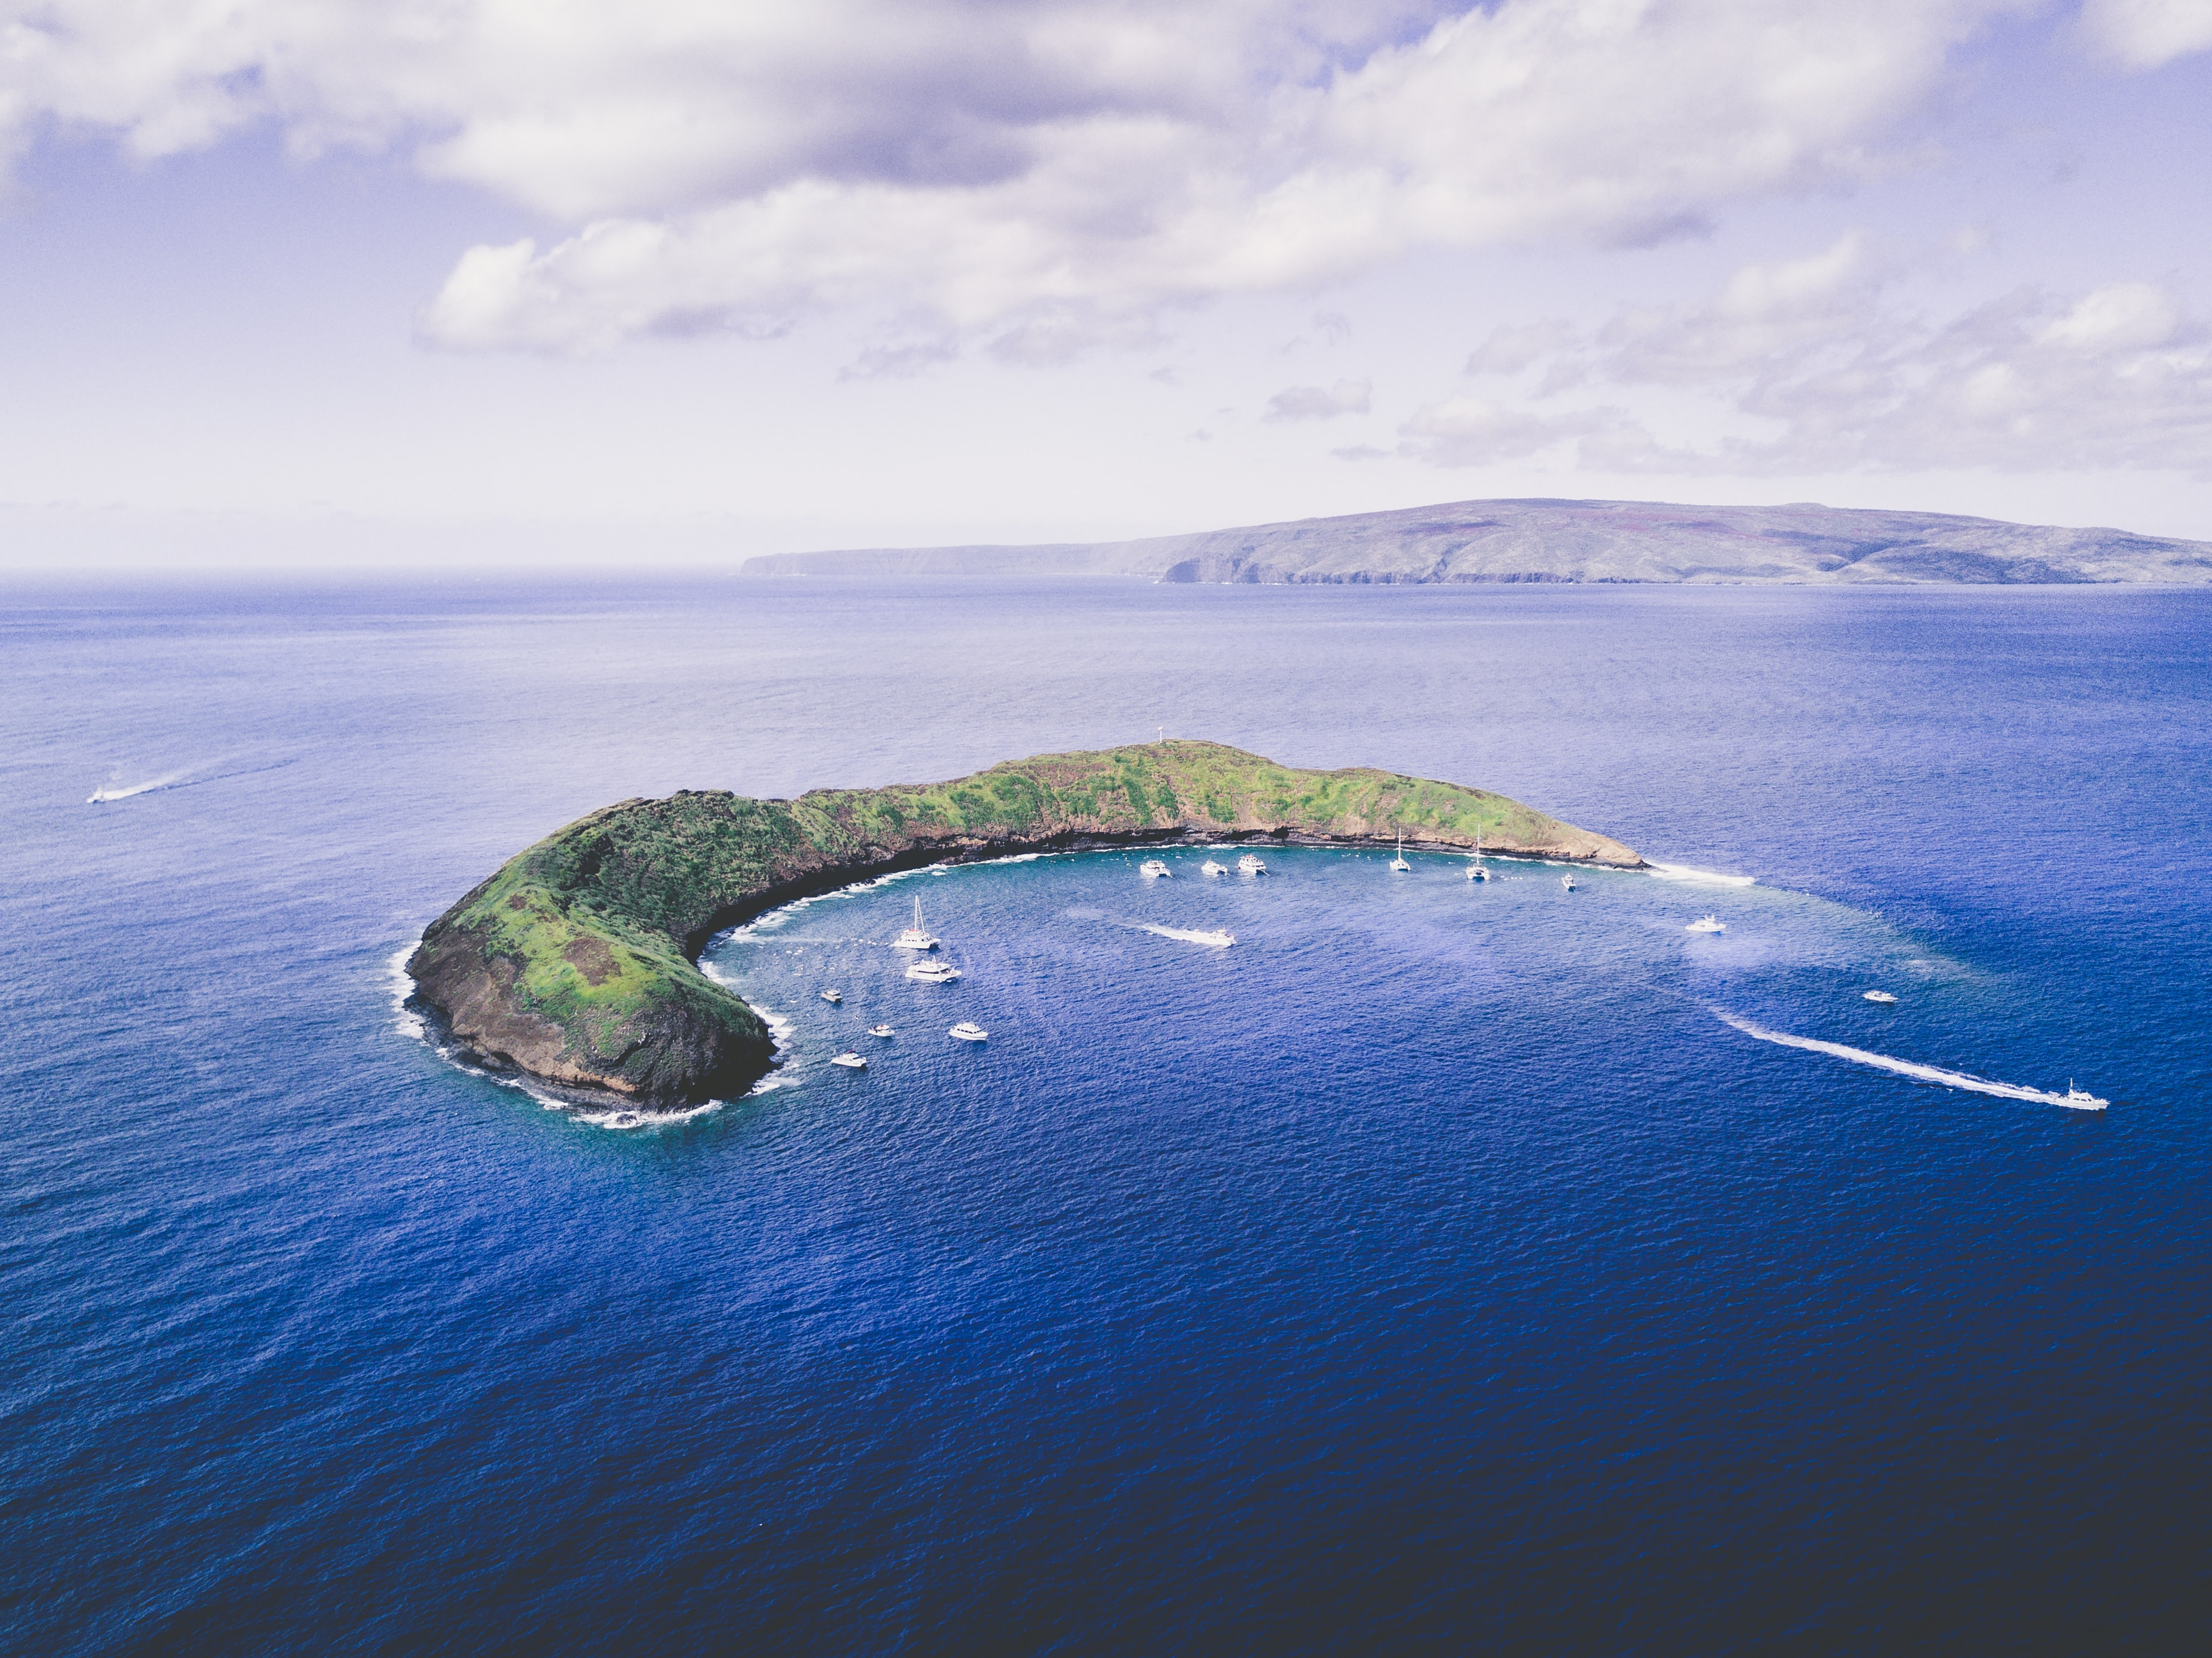 A crescent moon shaped island in the middle of a bright blue ocean at Molokini Crater